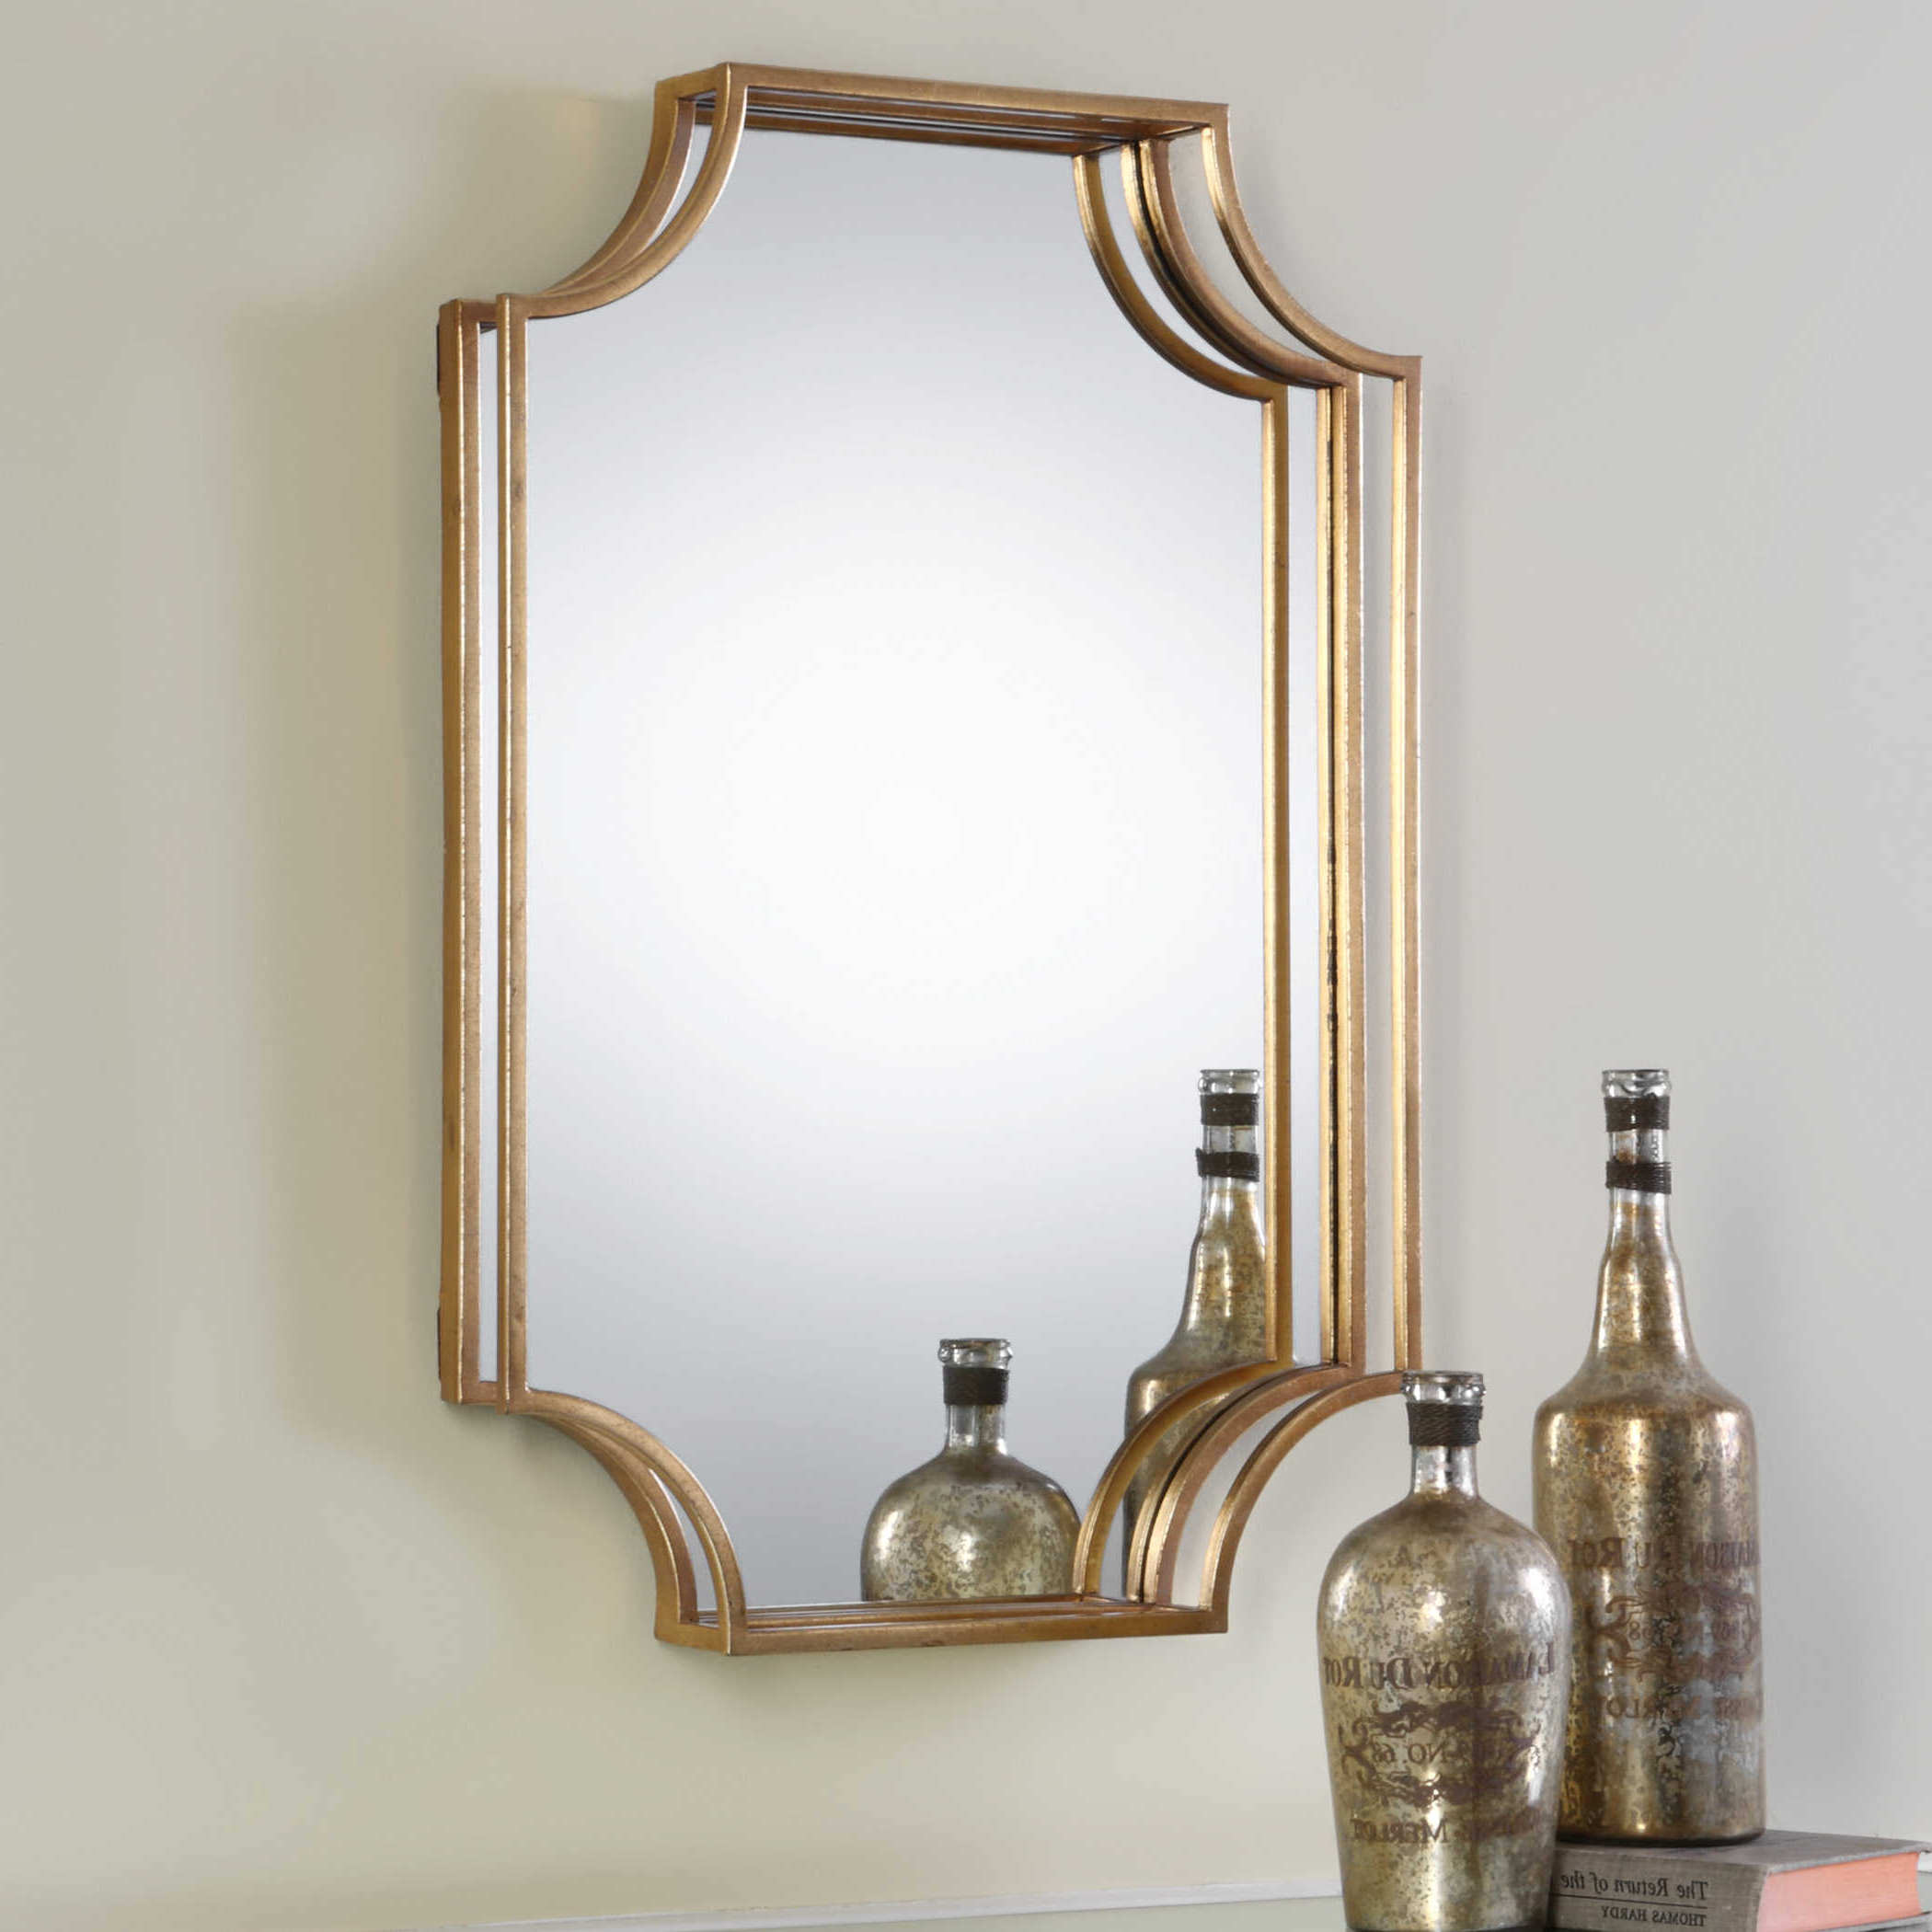 Uttermost Lindee Gold Wall Mirror Regarding Newest Uttermost Wall Mirrors (View 16 of 20)